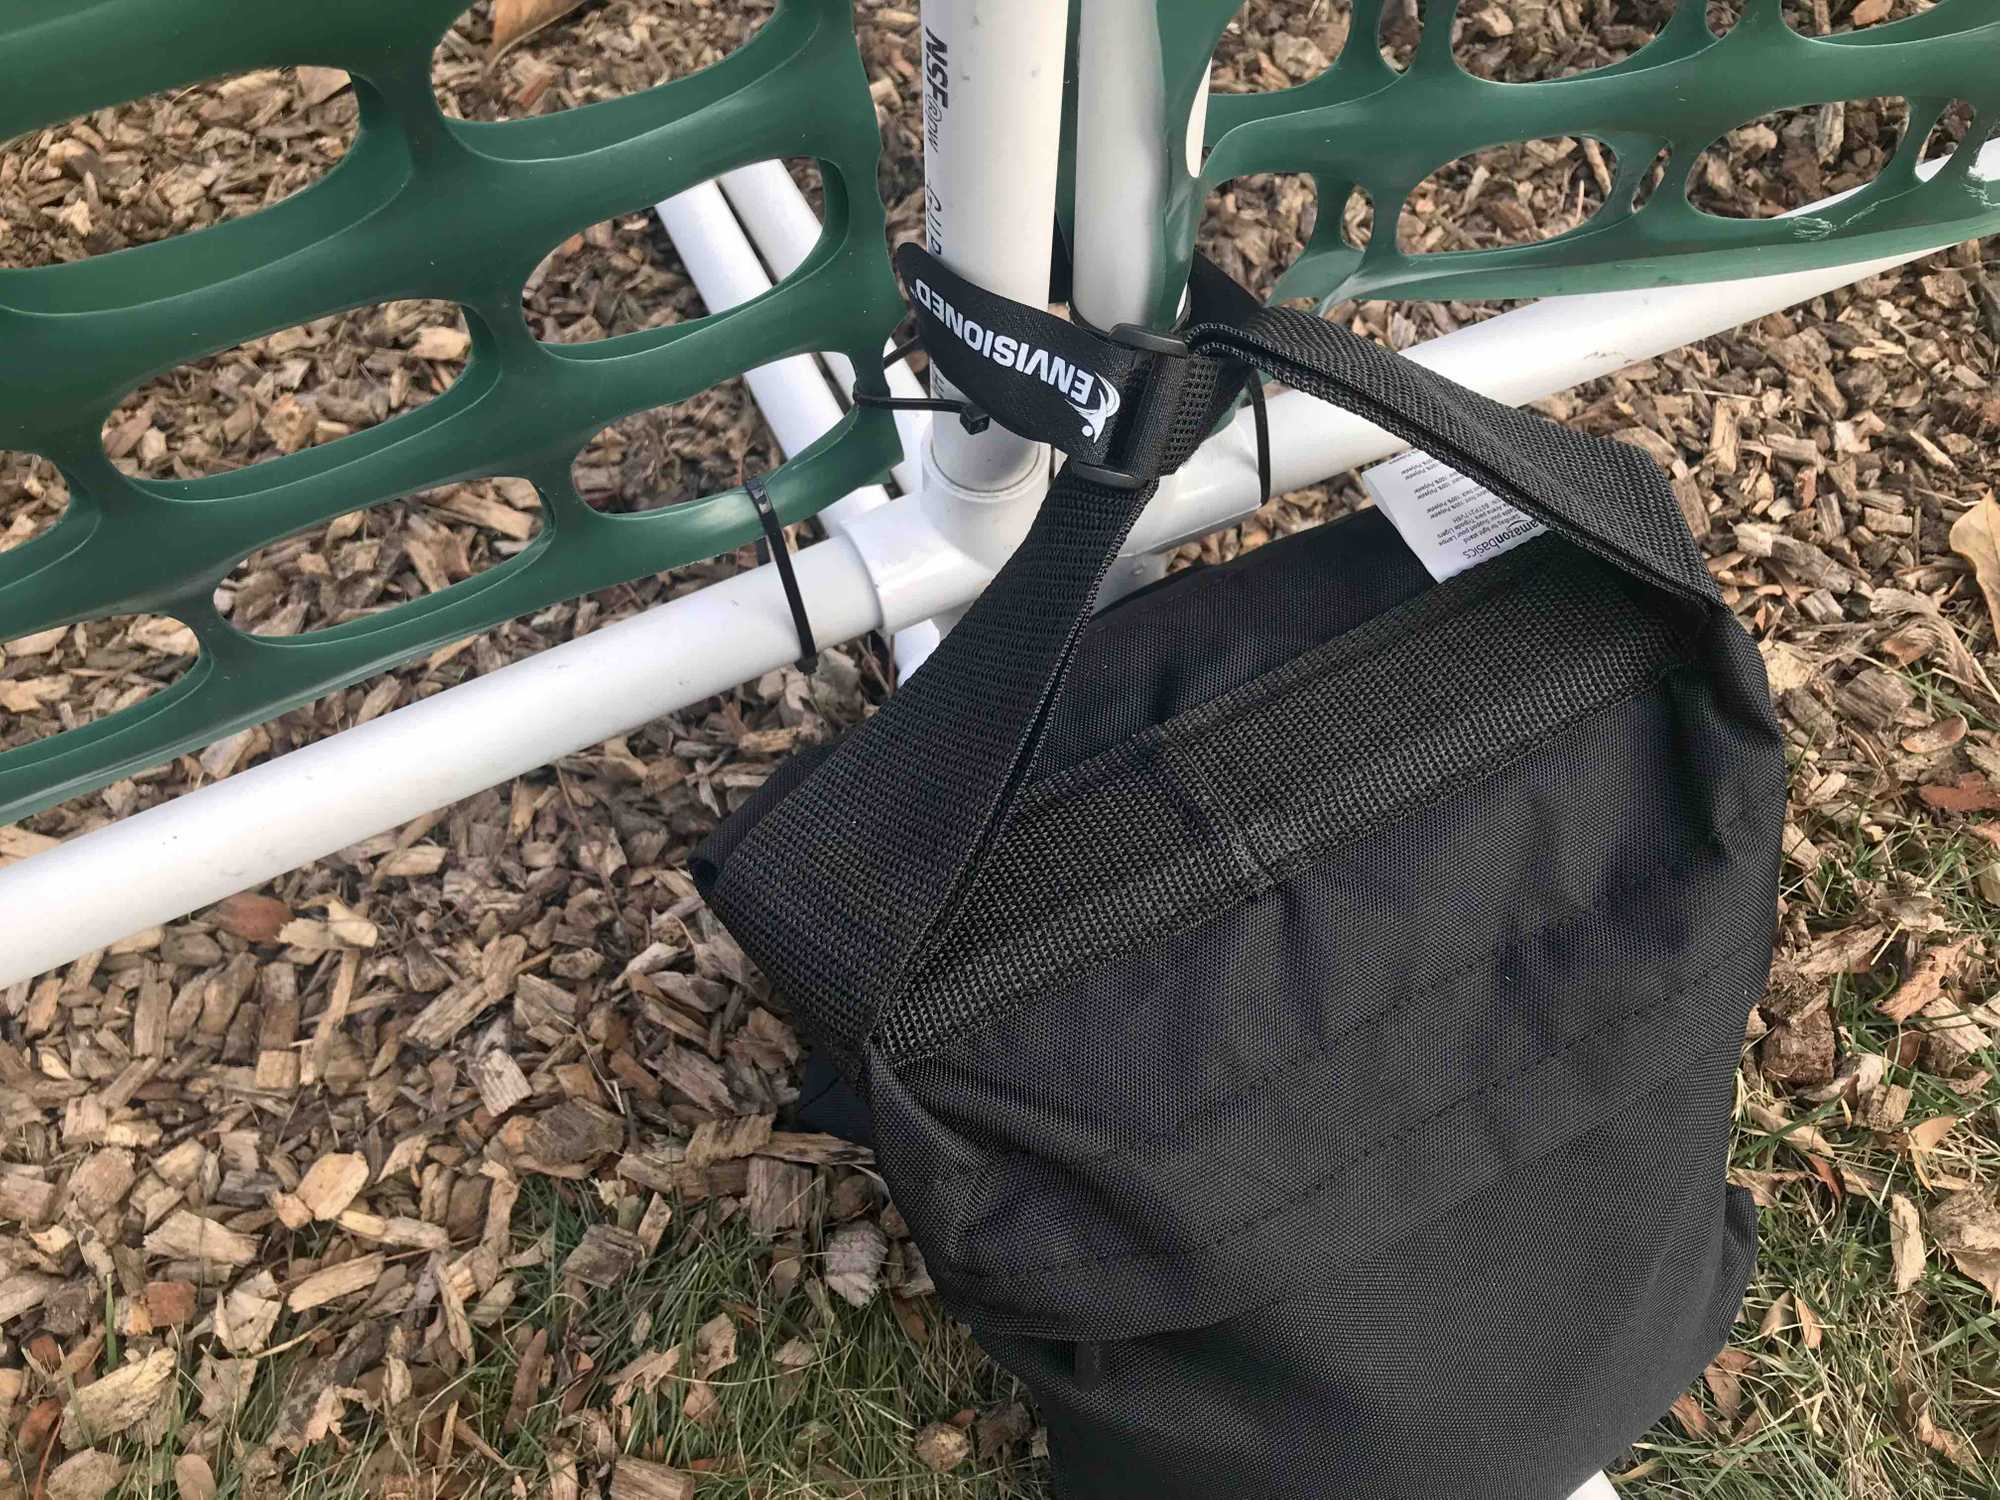 Velcro strap connecting gates and sandbag